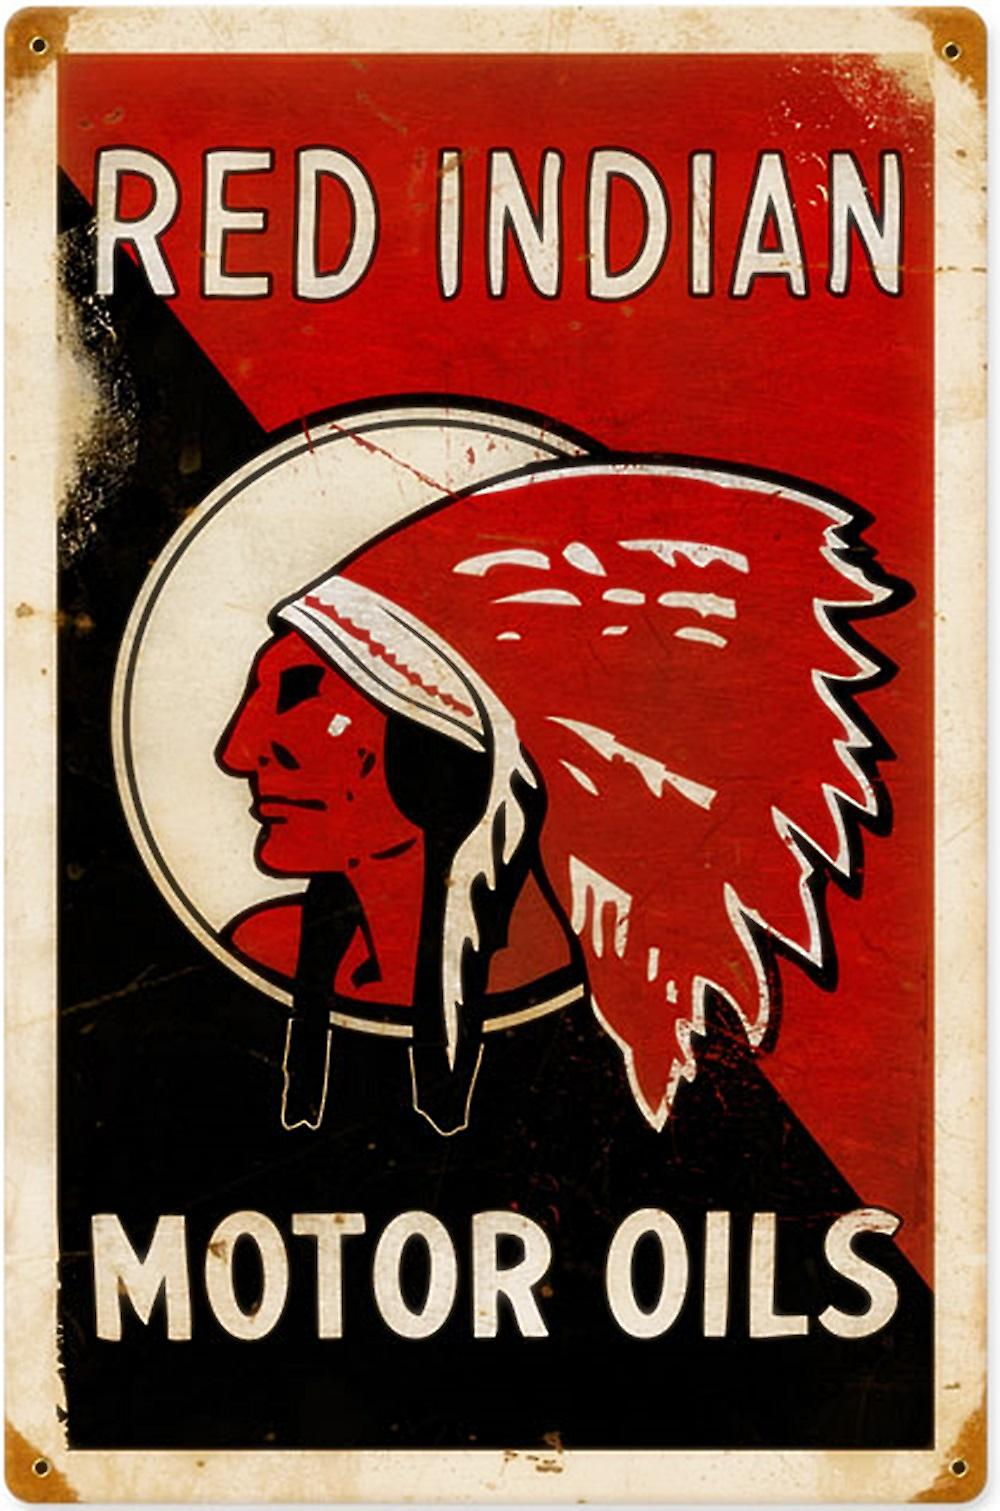 Red Indian Motor Oils rusted steel sign  (pst 1812)